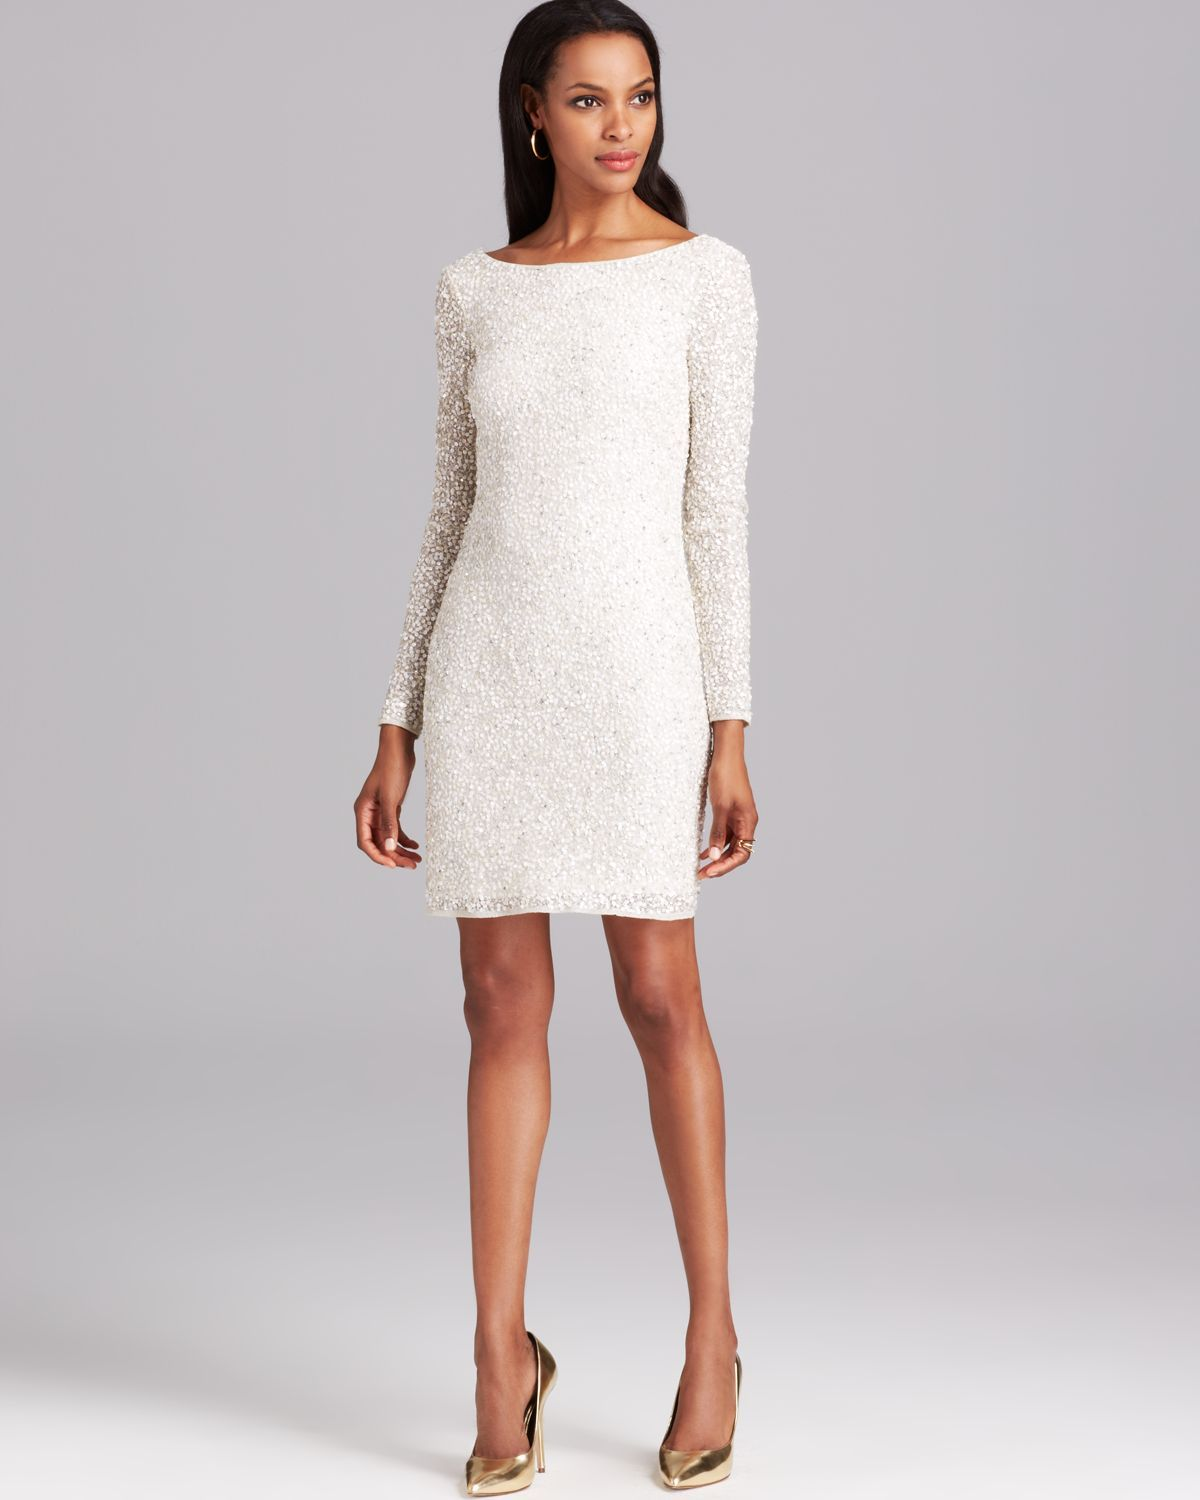 Aidan mattox Cocktail Dress Long Sleeve Sequin in White (Ivory ...